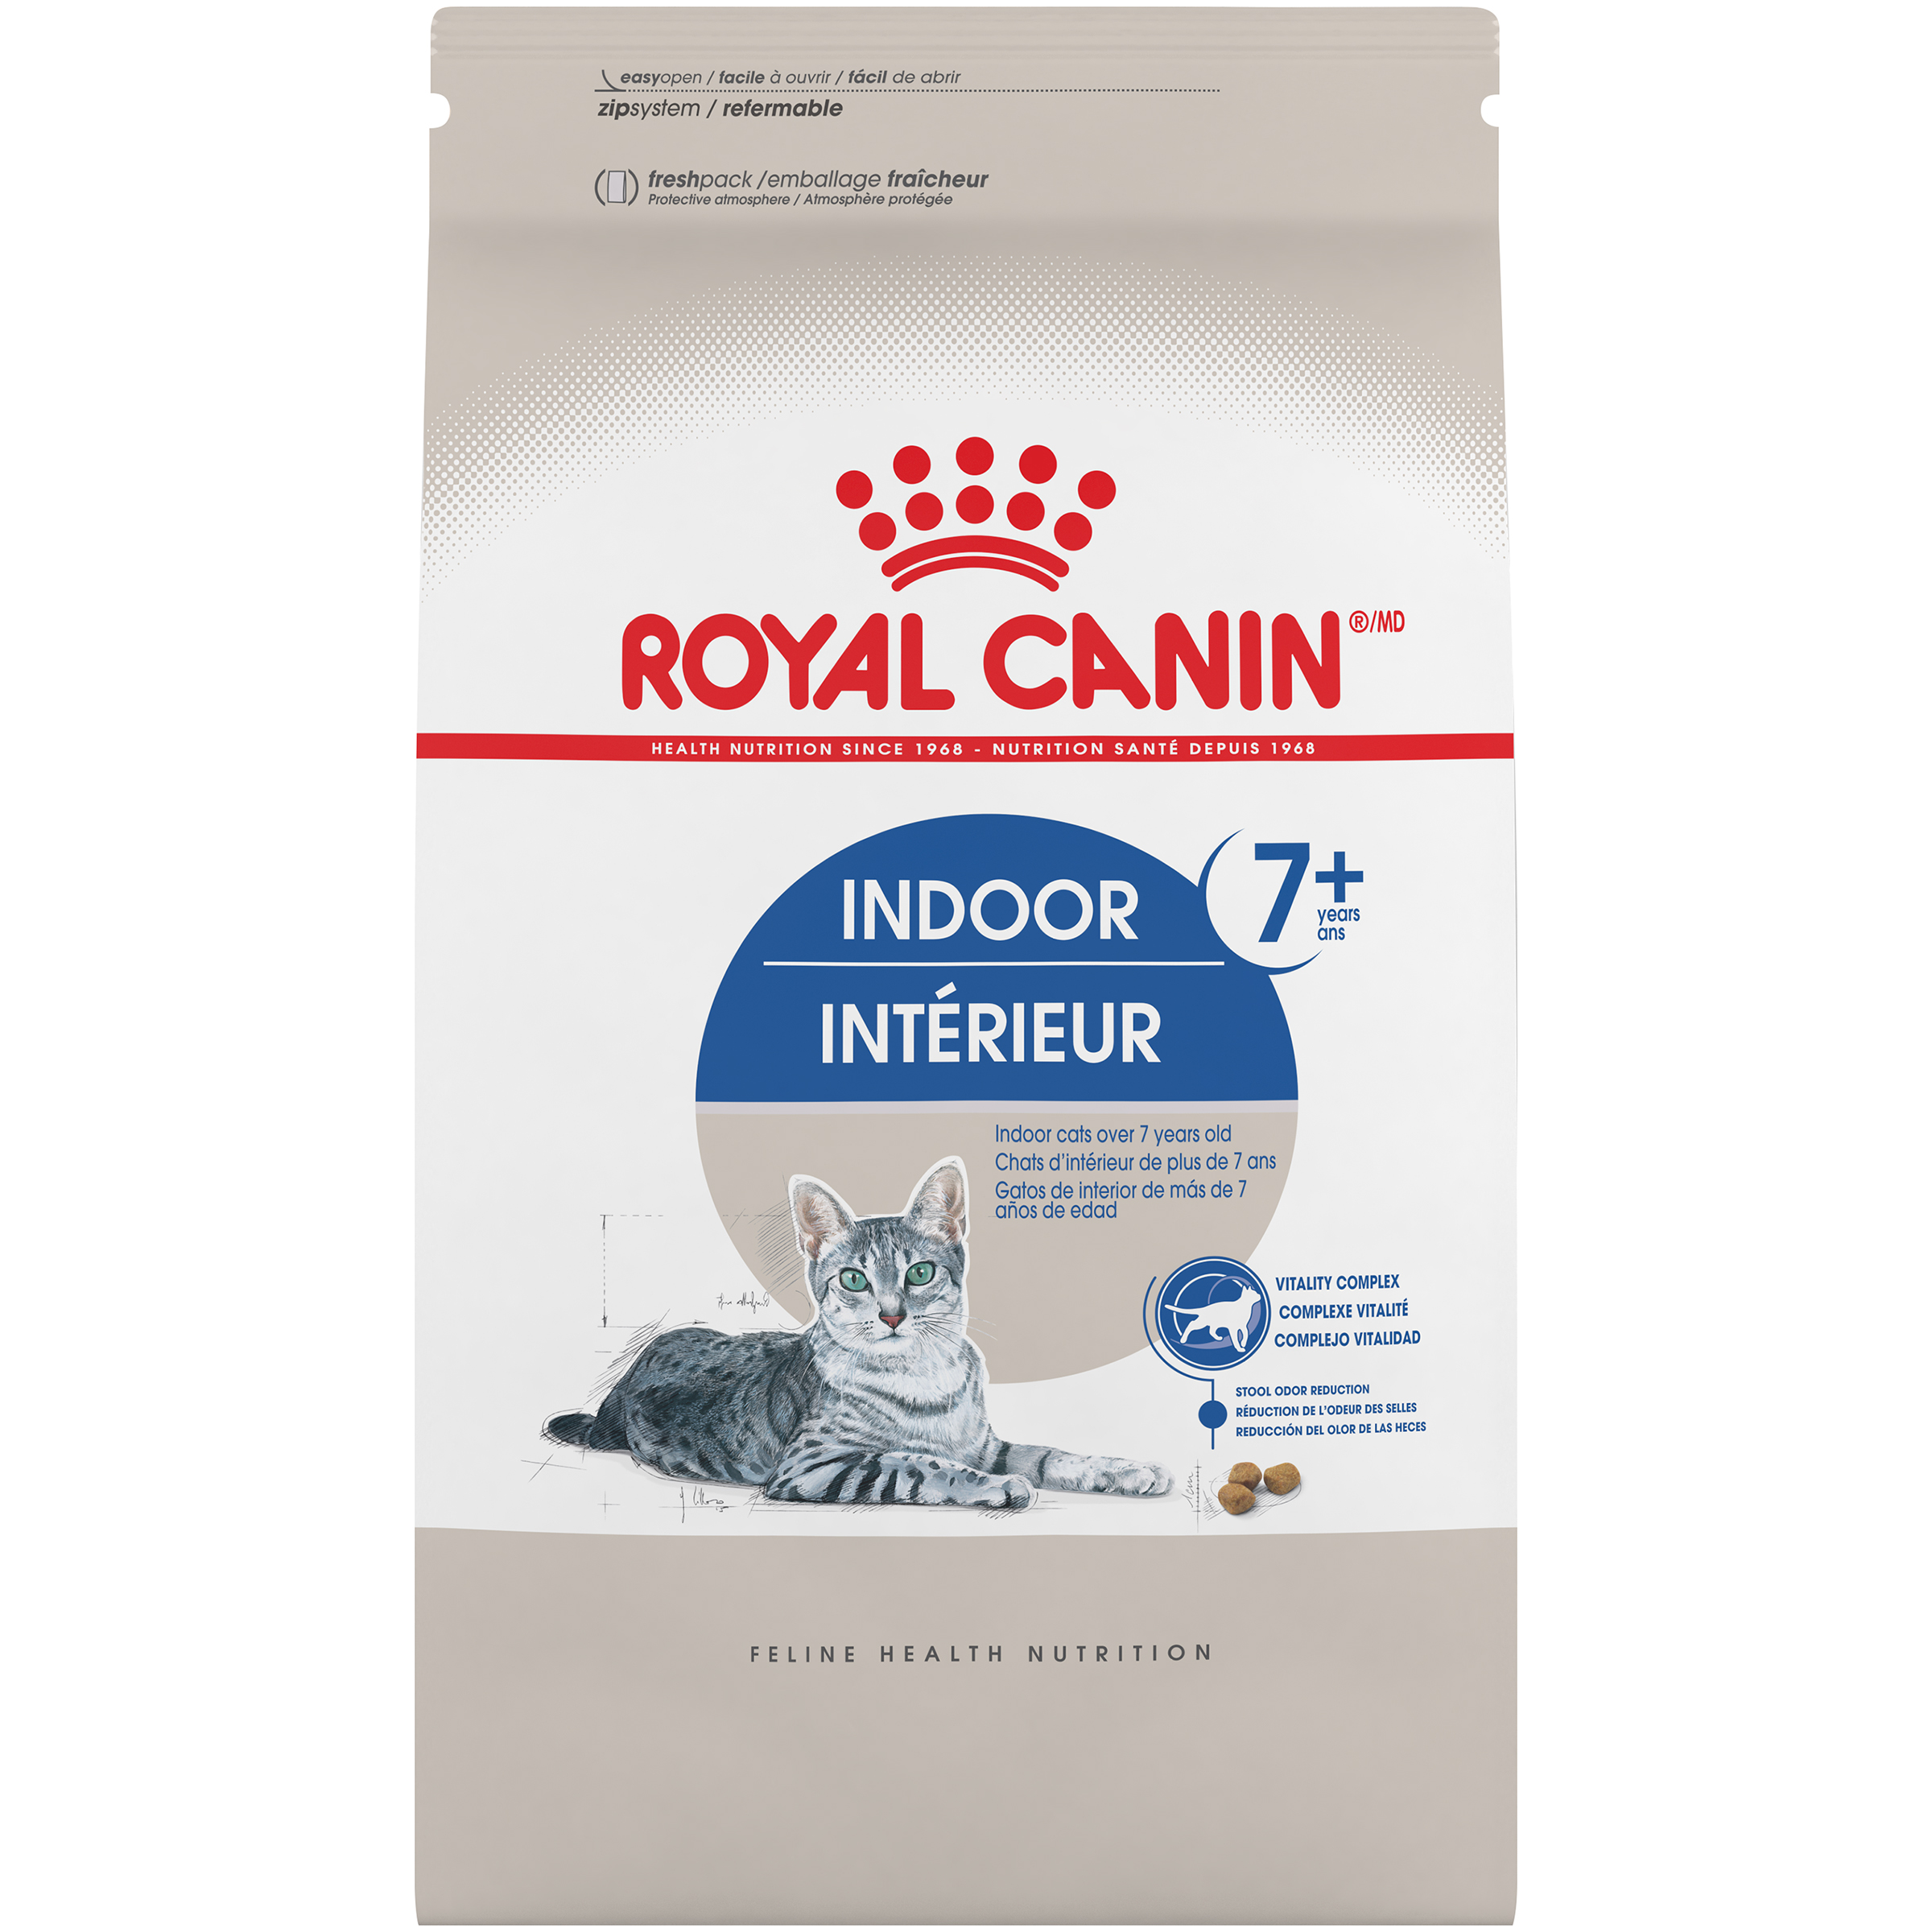 Royal Canin FHN Indoor Adult 7+ Dry Cat Food Image